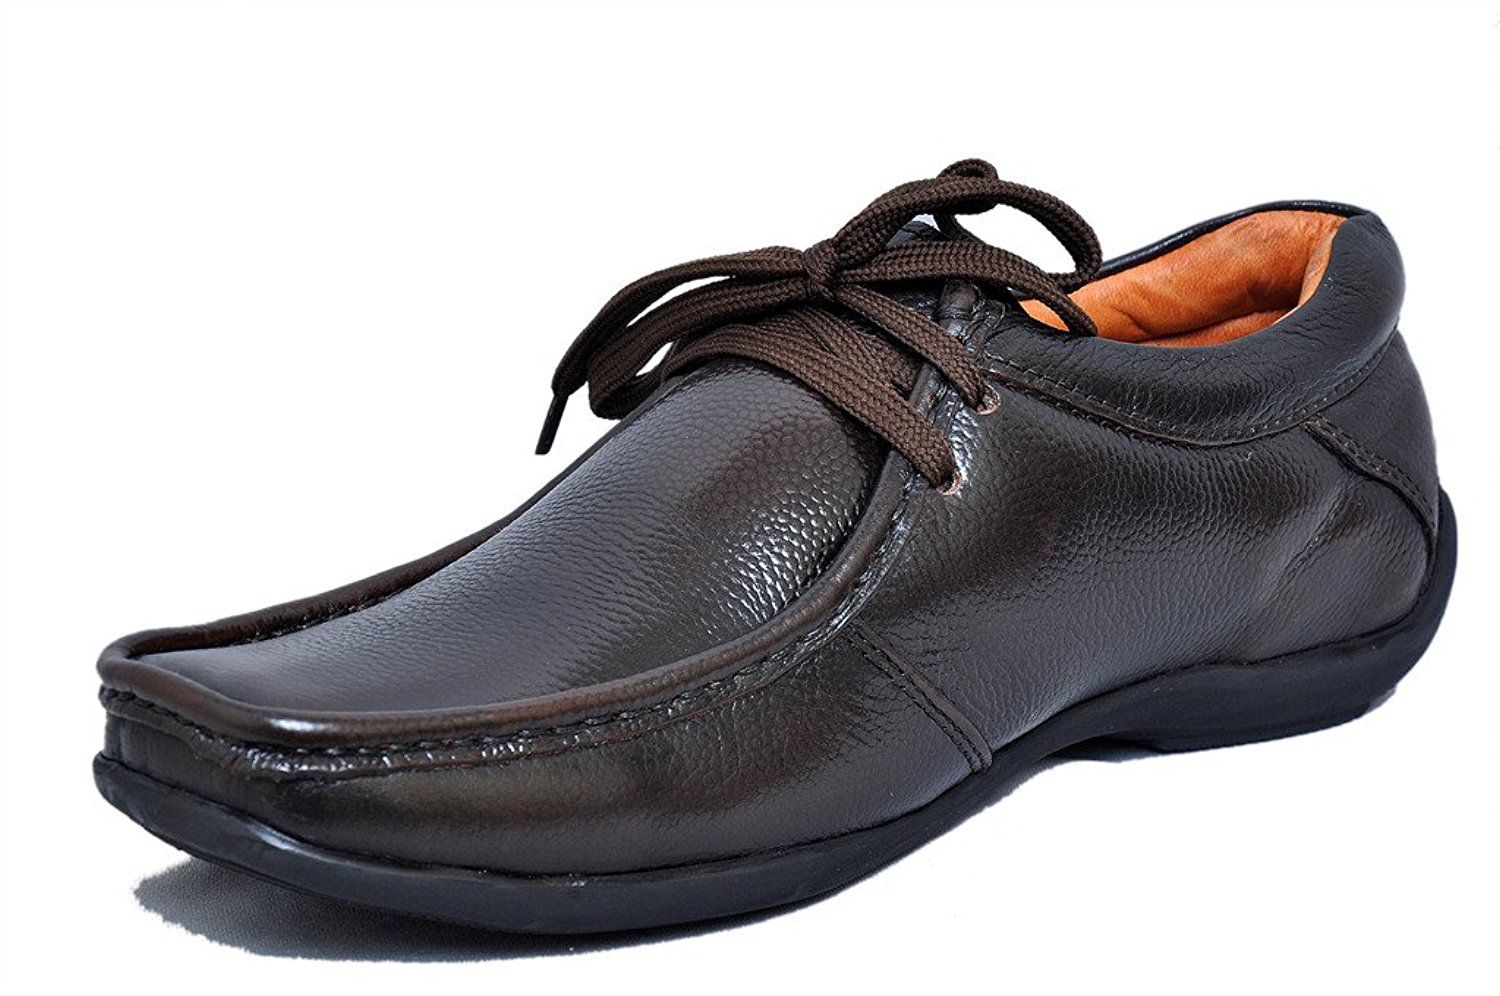 formal shoes for men zoom shoes for men genuine leather dress formal shoes online d-2571-brown:  buy online at mbbjwll